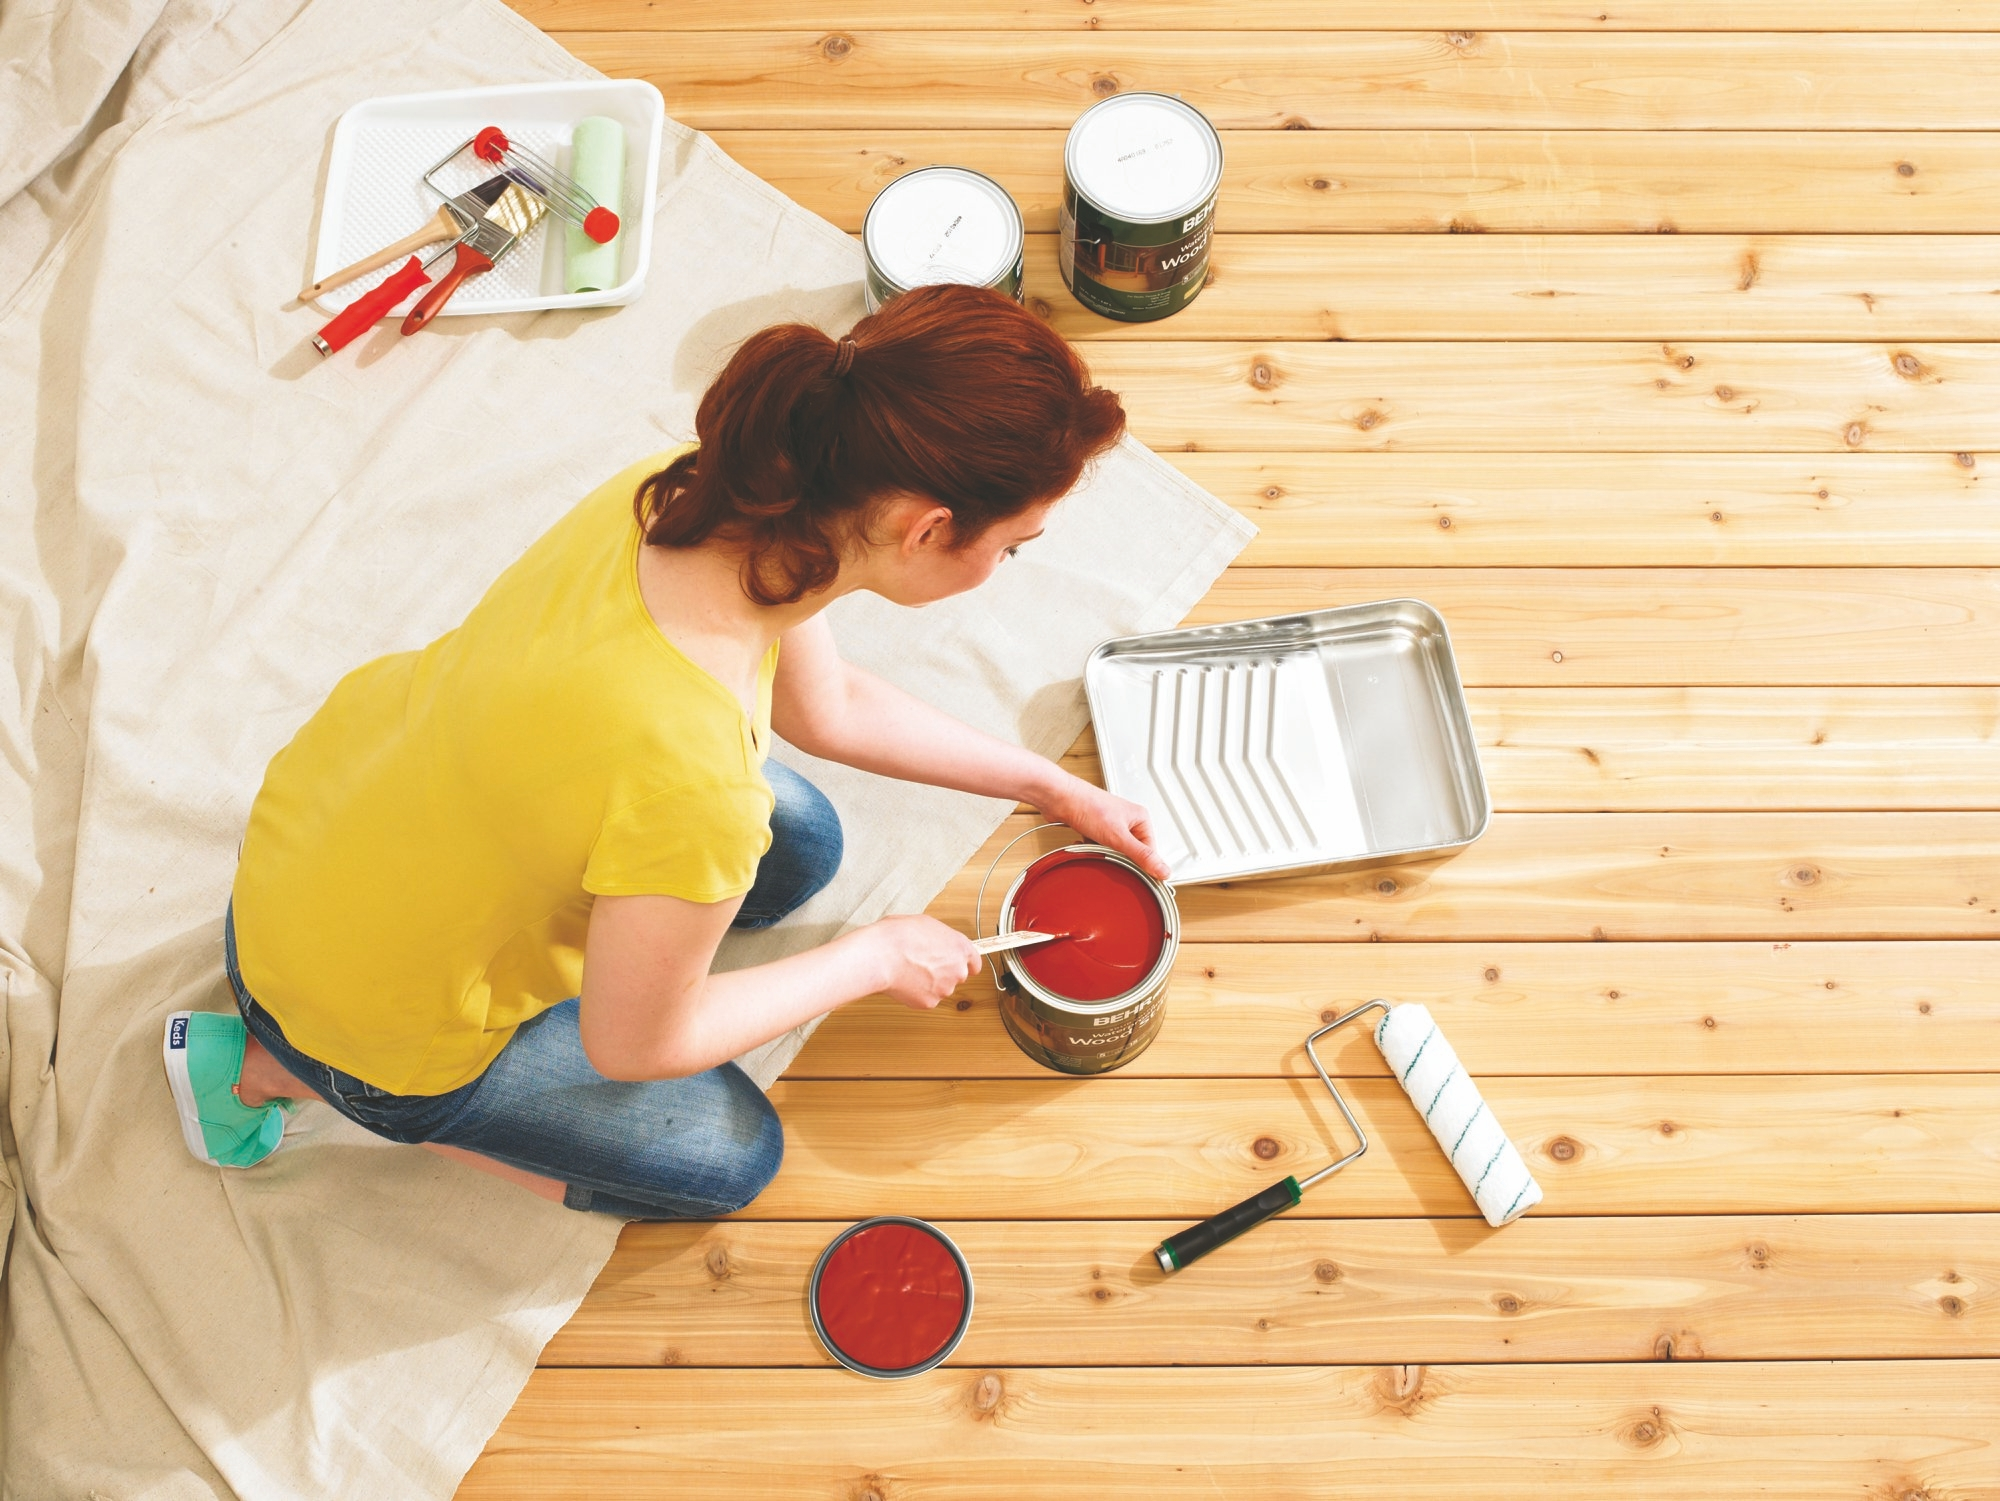 Shopping for deck paints and stains on holiday weekends can save you 30 percent or more.